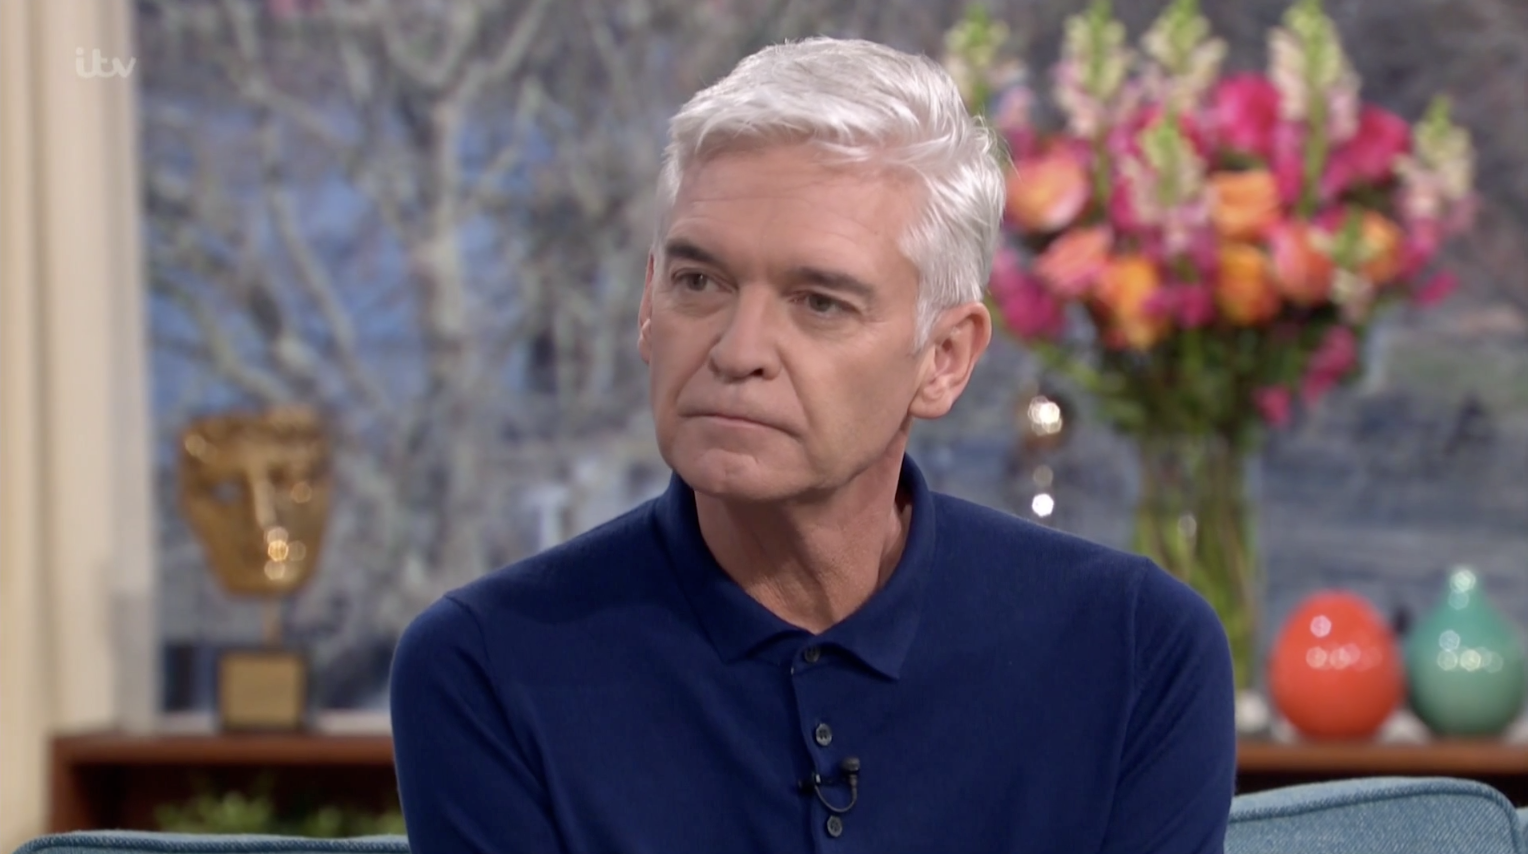 Screenshot 2020 02 07 at 20.18.19 1528x854 - Phillip Schofield reveals that he is gay – Channel 4 News